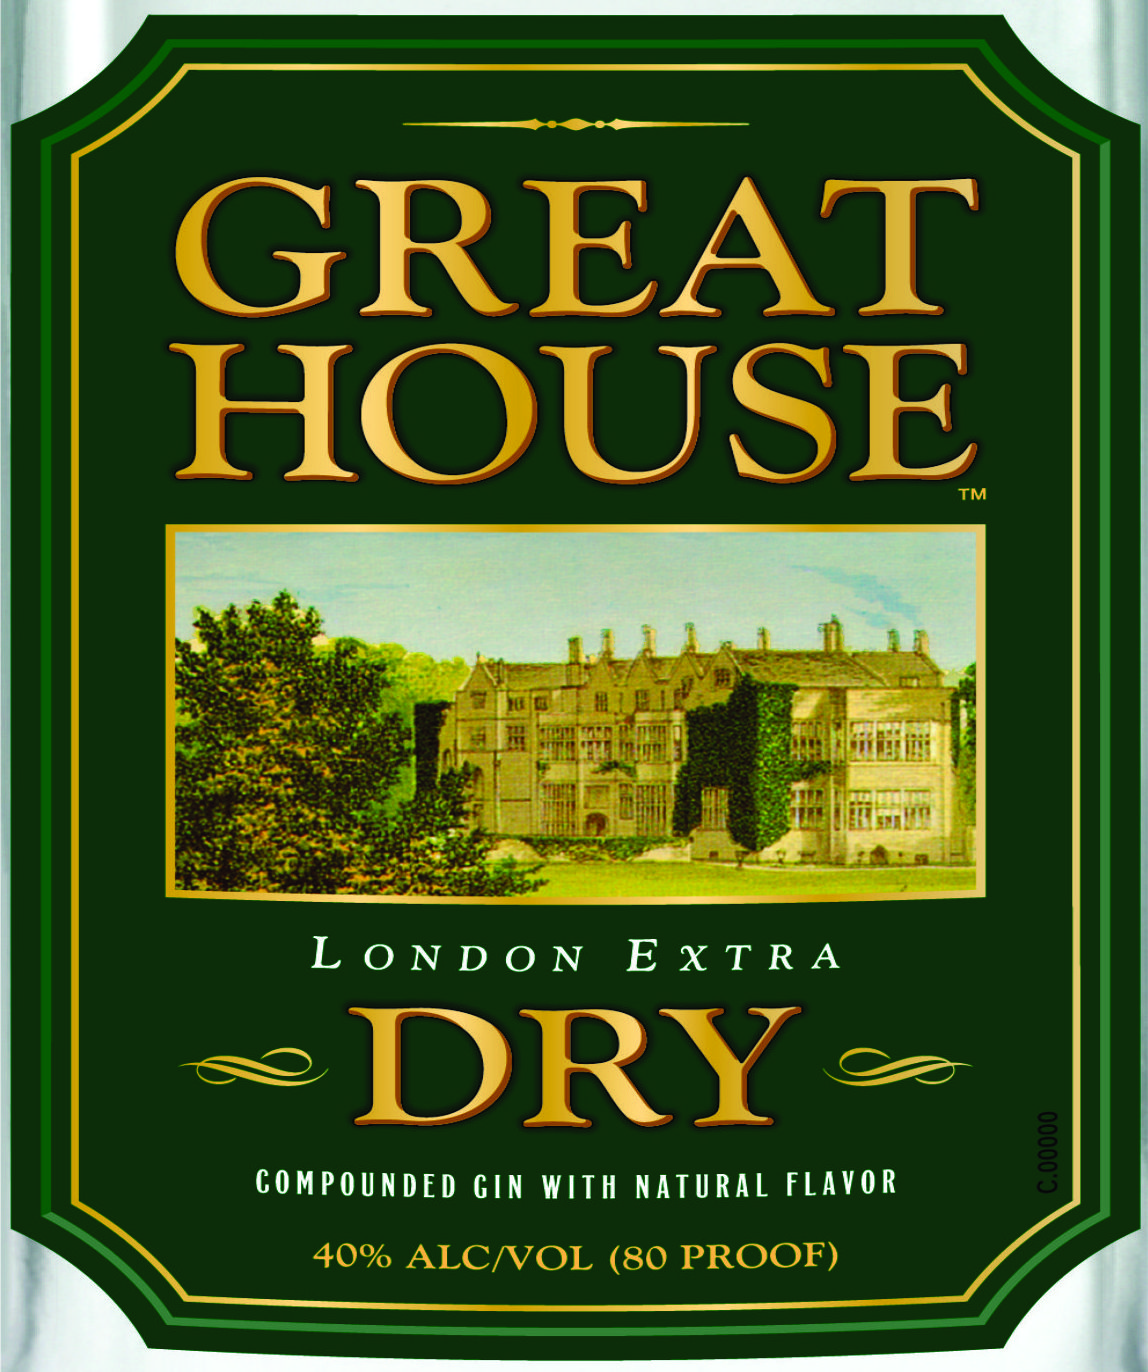 GREAT HOUSE DRY GIN